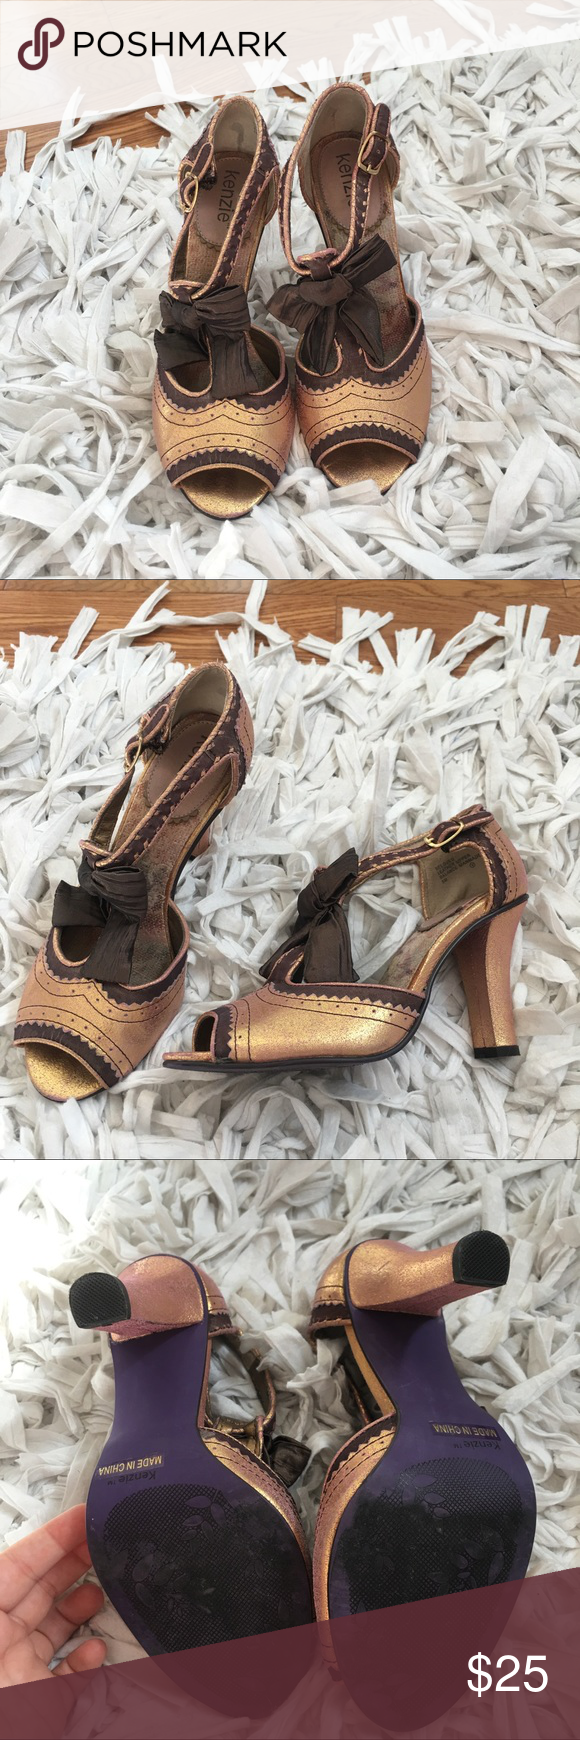 Kenzie 'Beloved' Rose Gold T-Strap Bow Heels Gently used Kenzie bow heels. Soles are in great shape and so is the rest of the shoe. Runs a half size small so this would fit a 5.5 or a narrow size 6. This shoe is not made for wider feet. Accepting all reasonable offers 💕 kenzie Shoes Heels